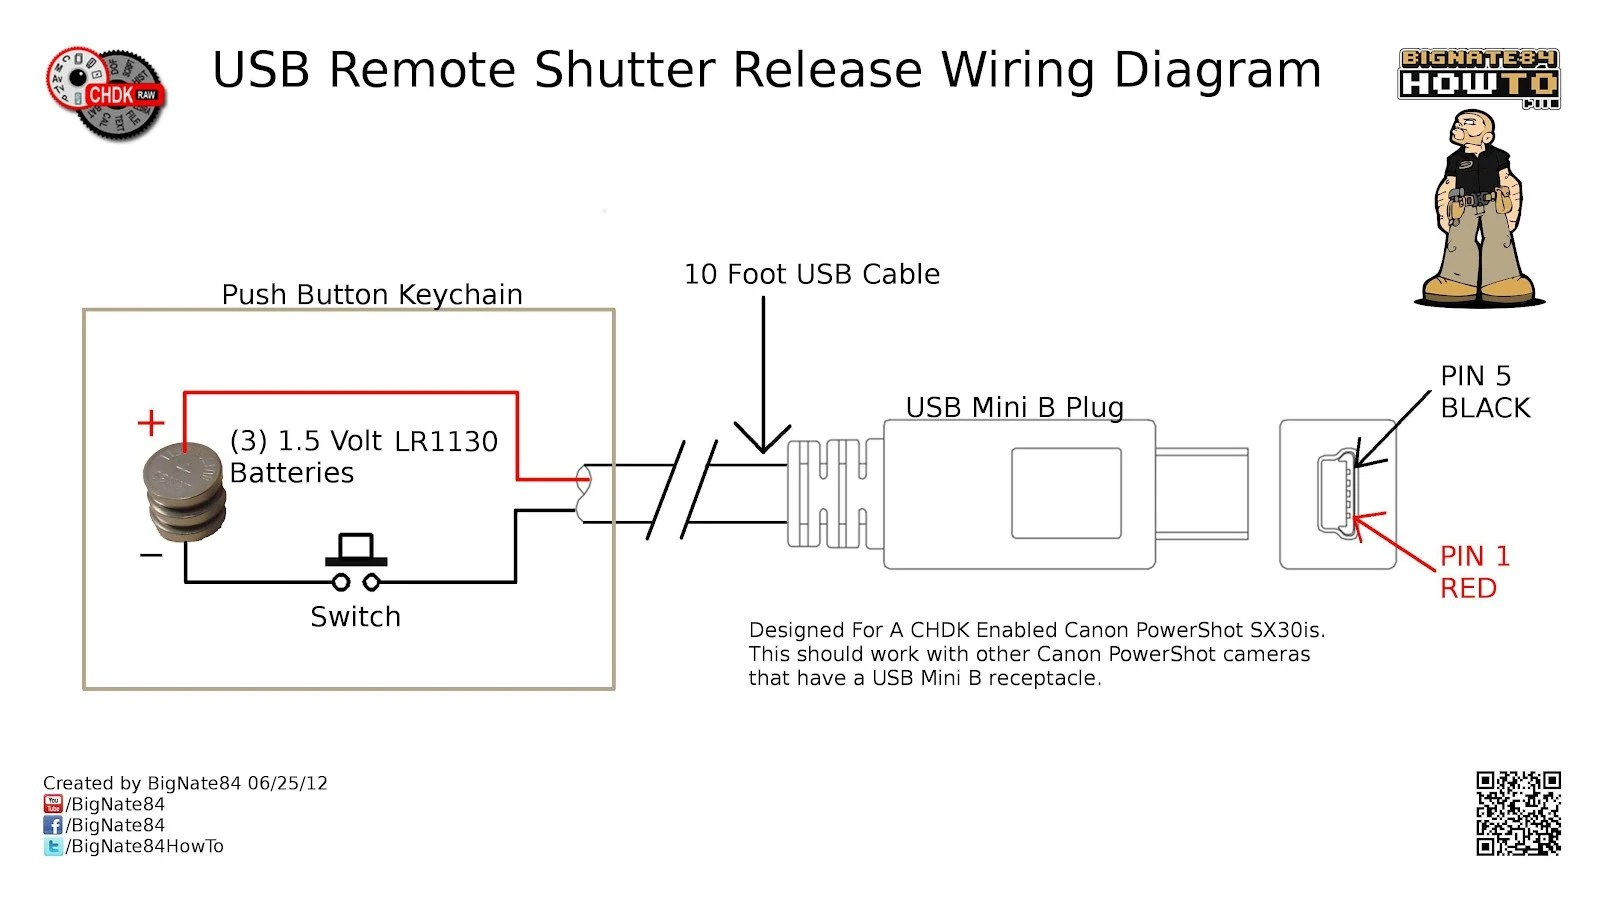 small resolution of 0001 usb remote shutter wiring diagram 1 jpeg